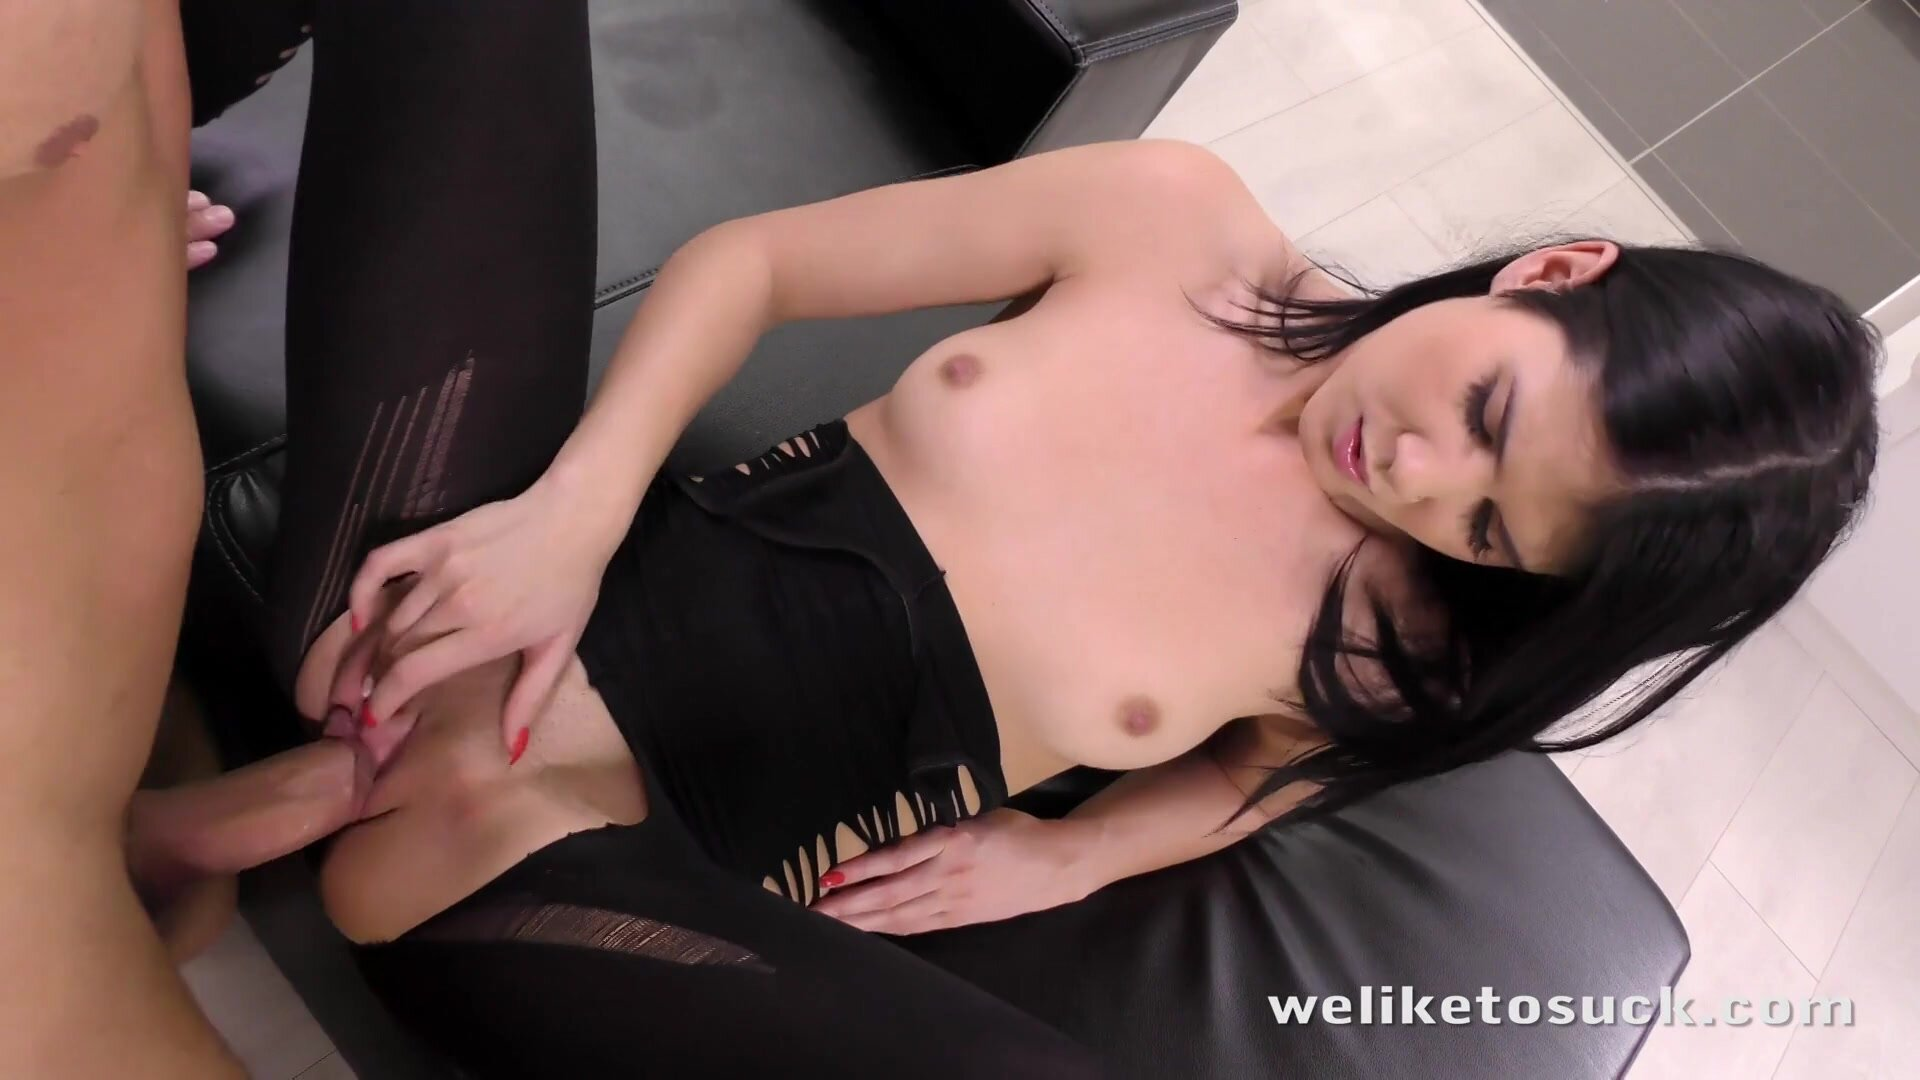 Massive Cock In Her Pussy And Mouth - Lady Dee